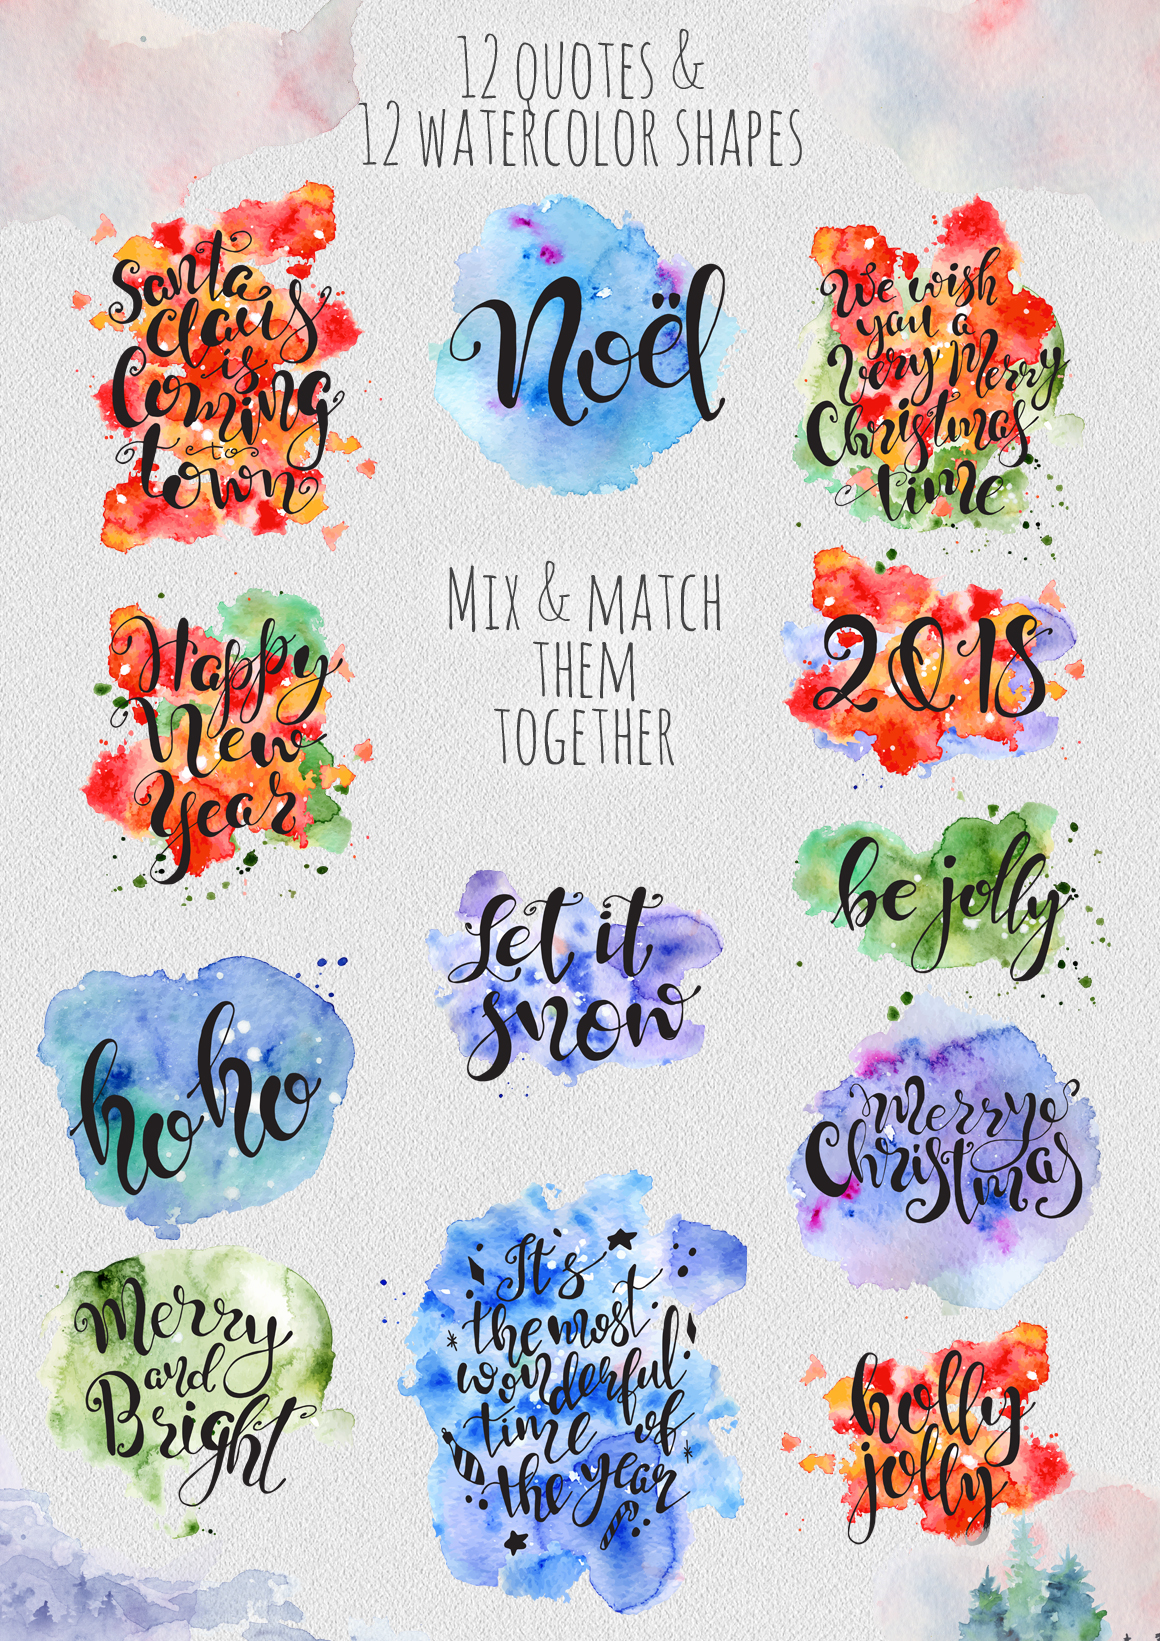 Magical Winter Clipart: 14 Christmas Watercolor Clipart Bundles in 1 - $28 - 15 Quotes color